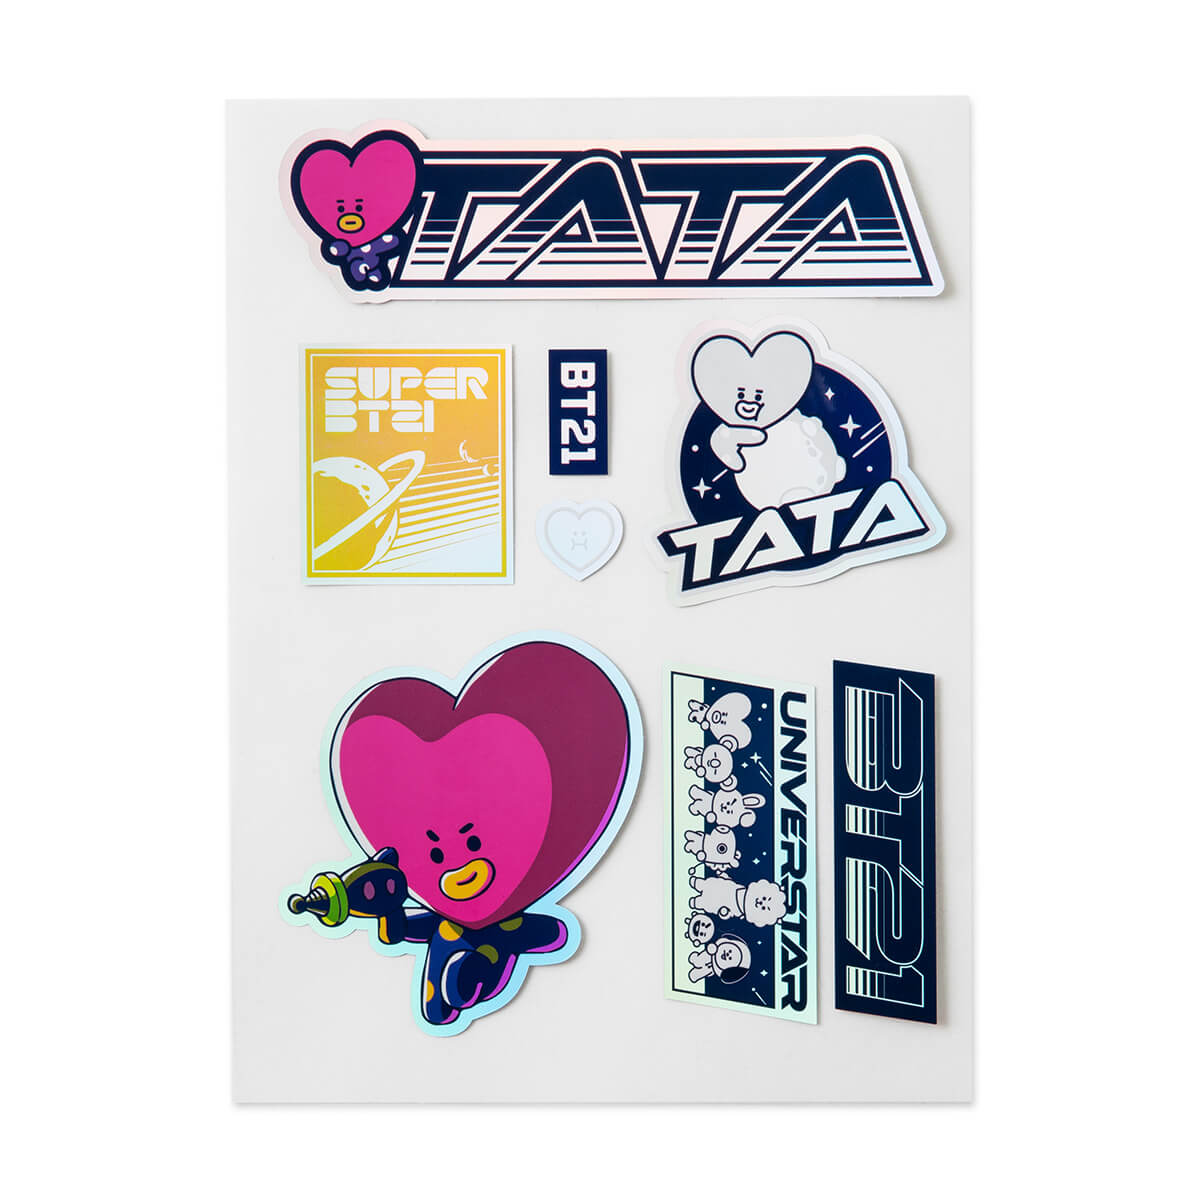 BT21 TATA Space Wappen Holographic PVC Decal Sticker Sheet